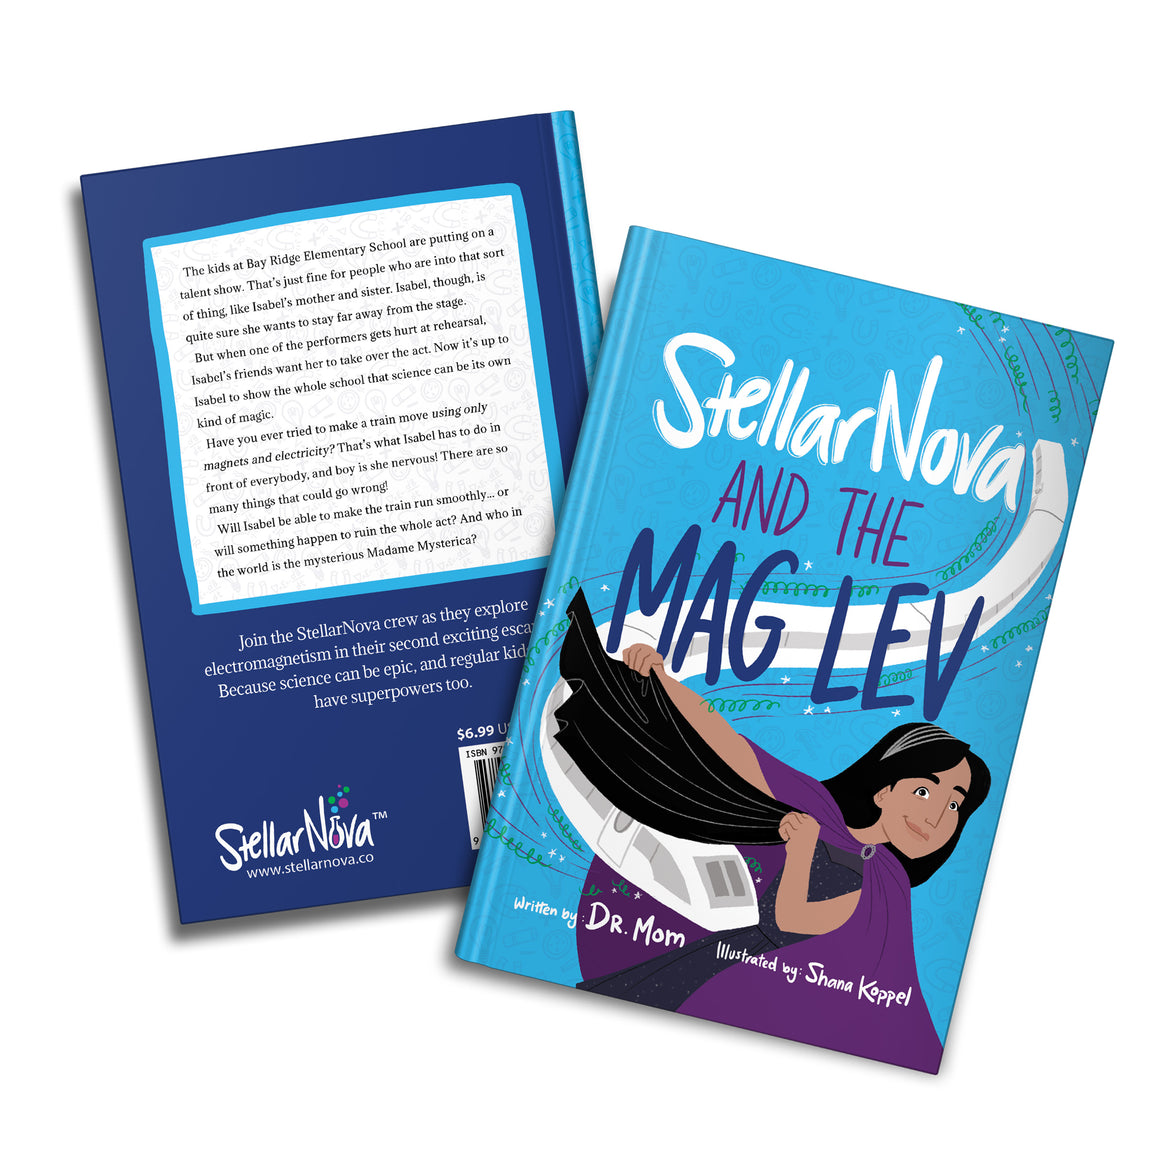 Book 2: StellarNova and the MagLev